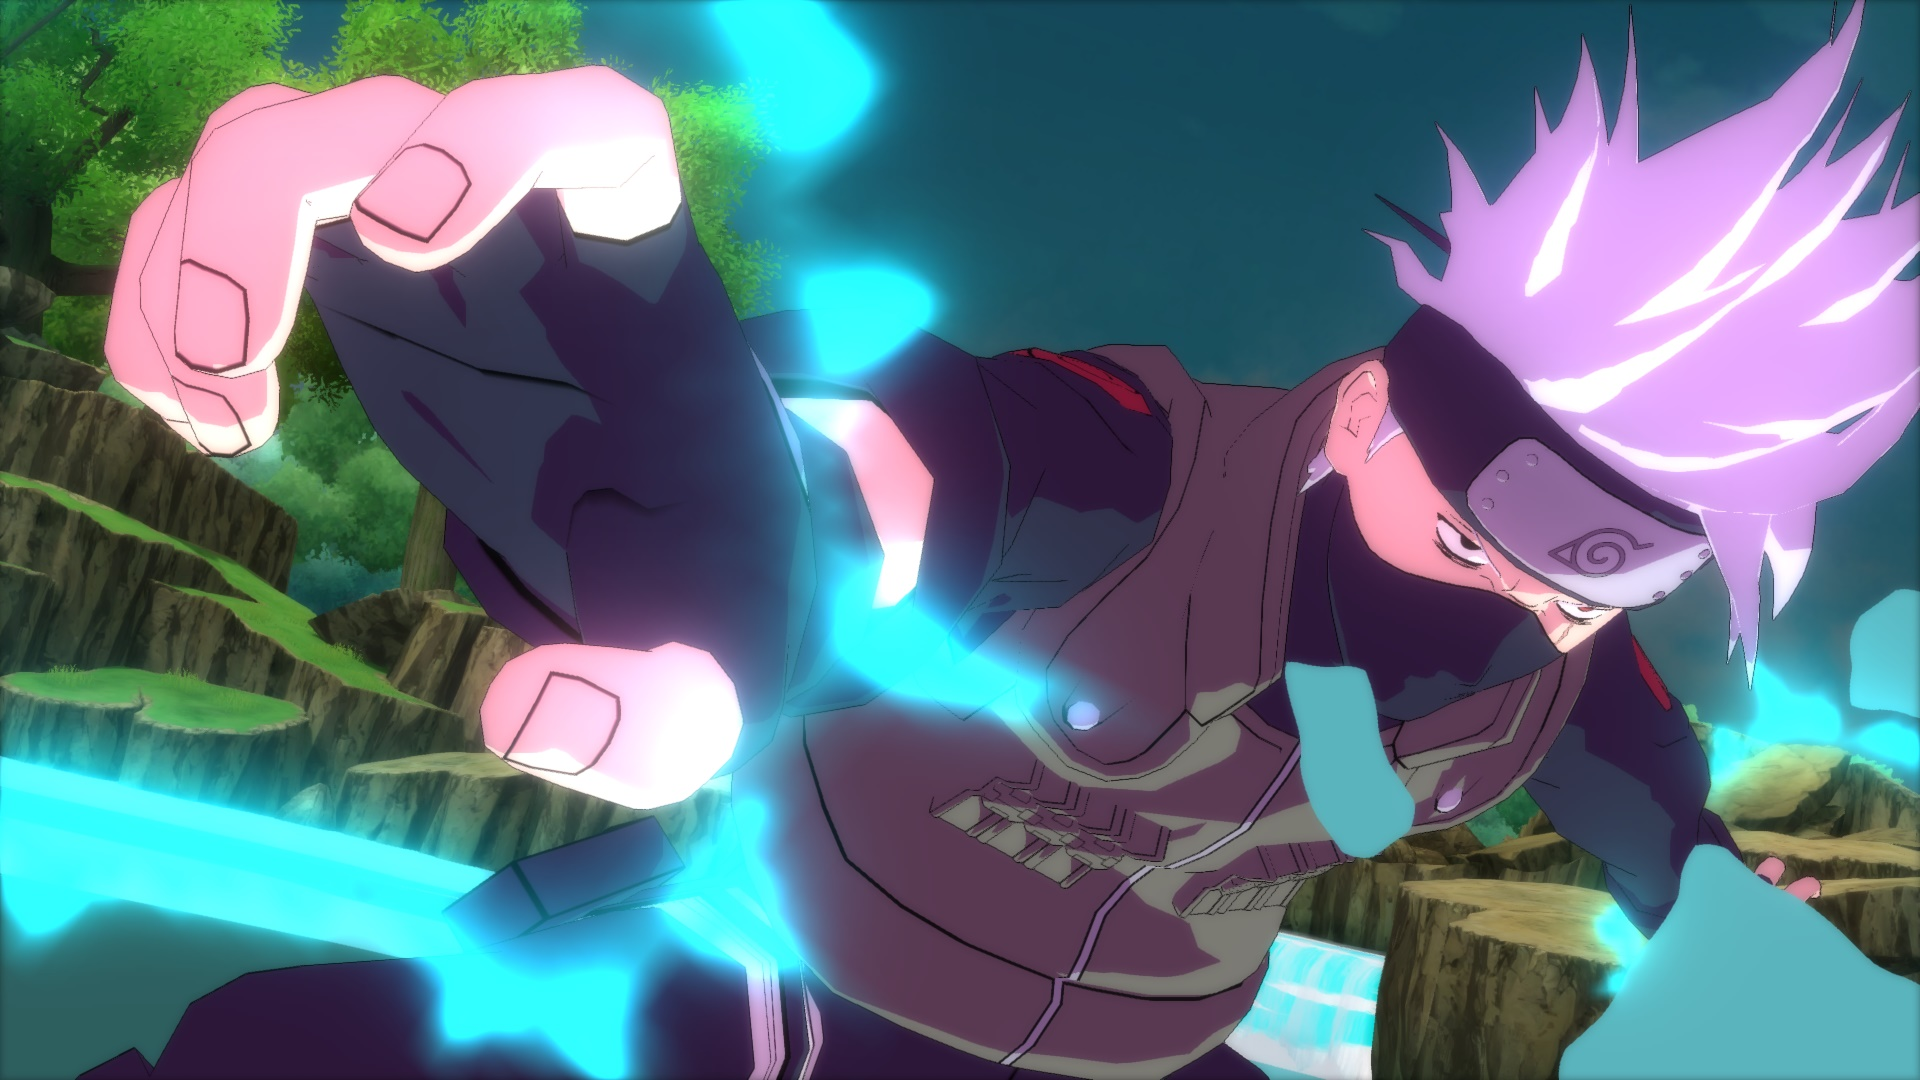 Review: Naruto Shippuden: Ultimate Ninja Storm Legacy — A solid